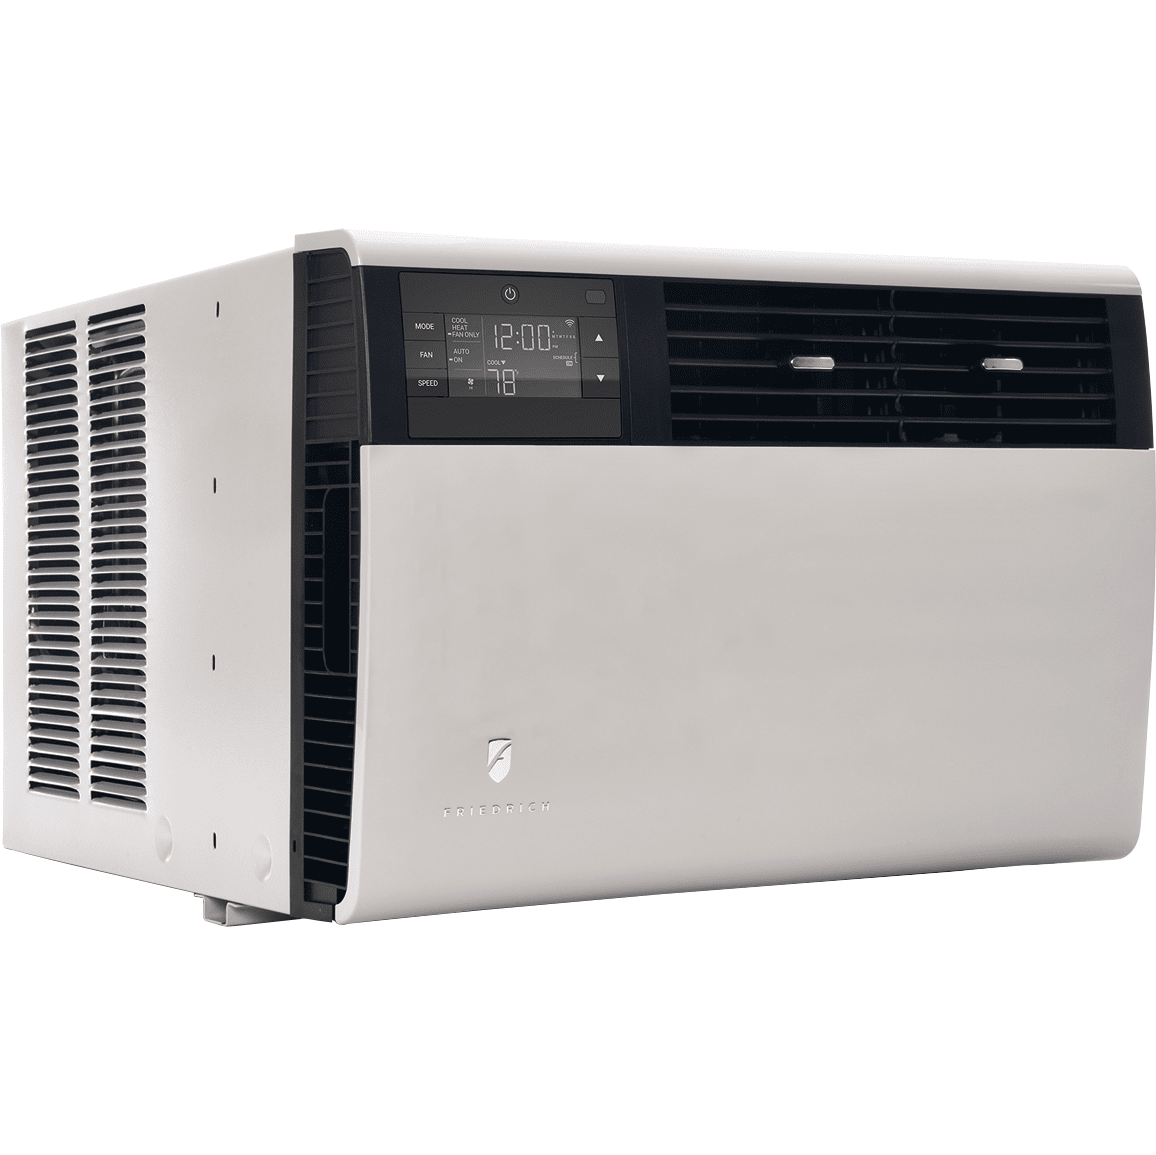 Friedrich Kuhl 10,000 BTU Window Air Conditioner